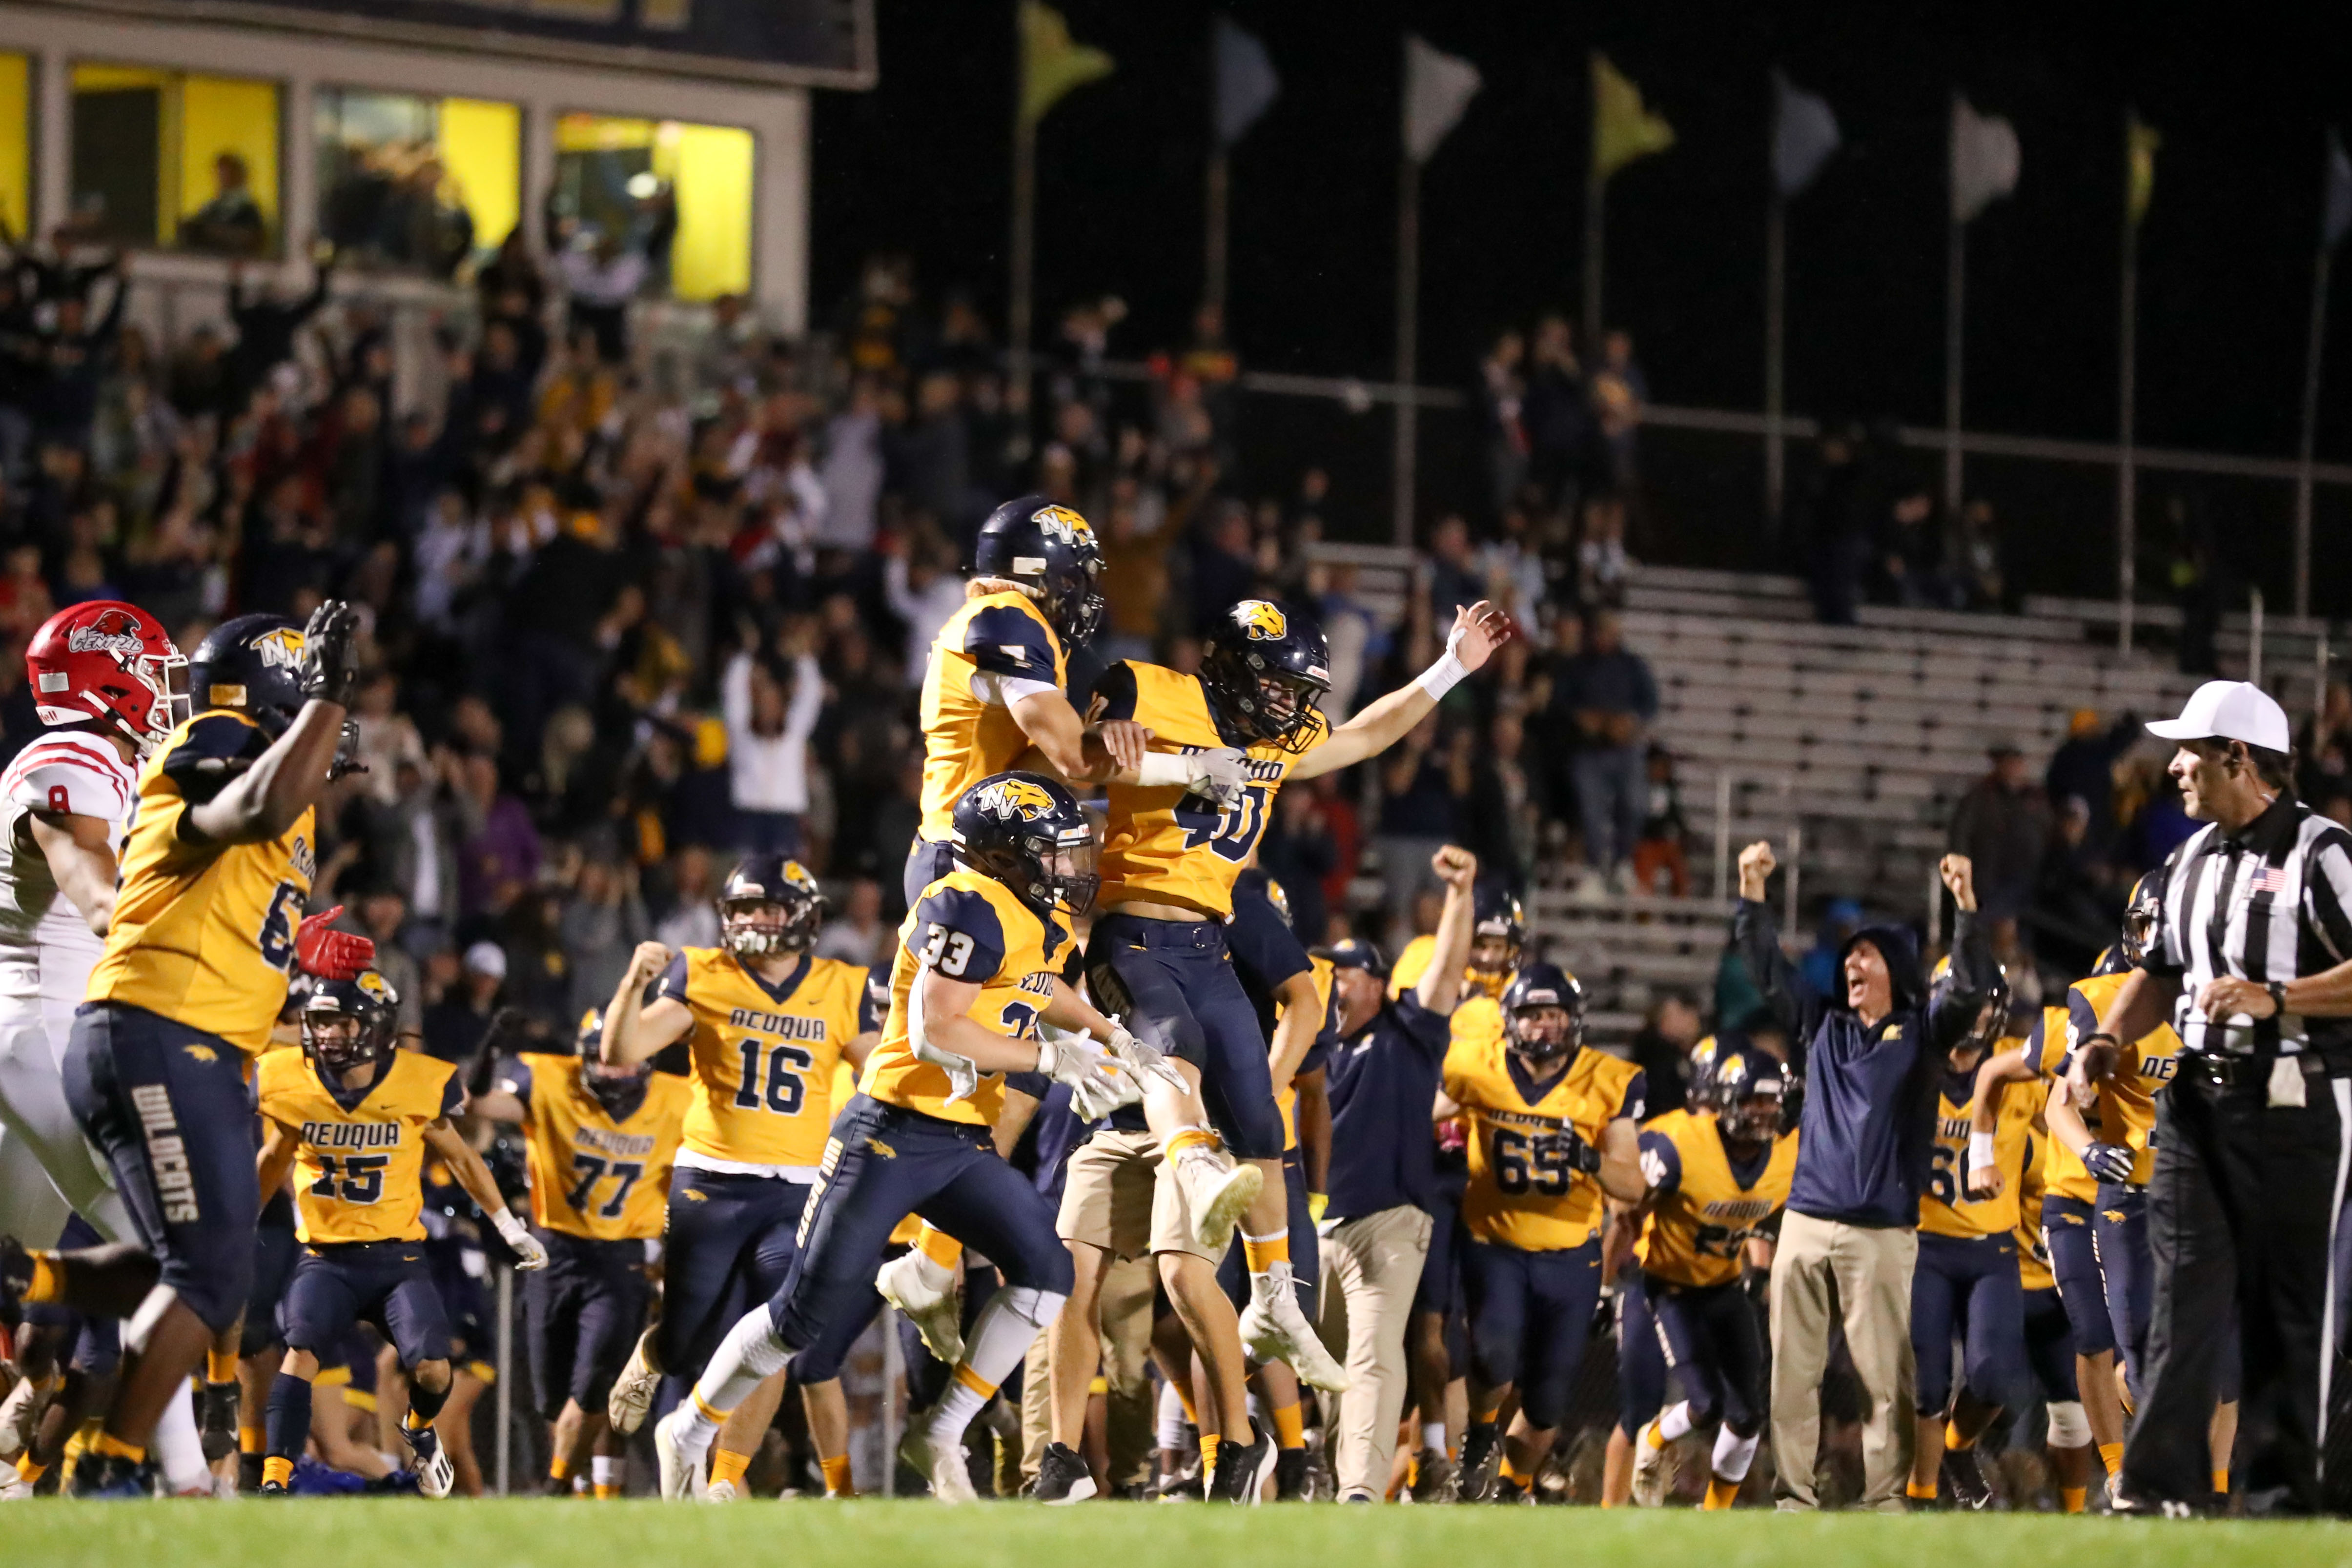 Neuqua Valley players react after winning against Naperville Central.